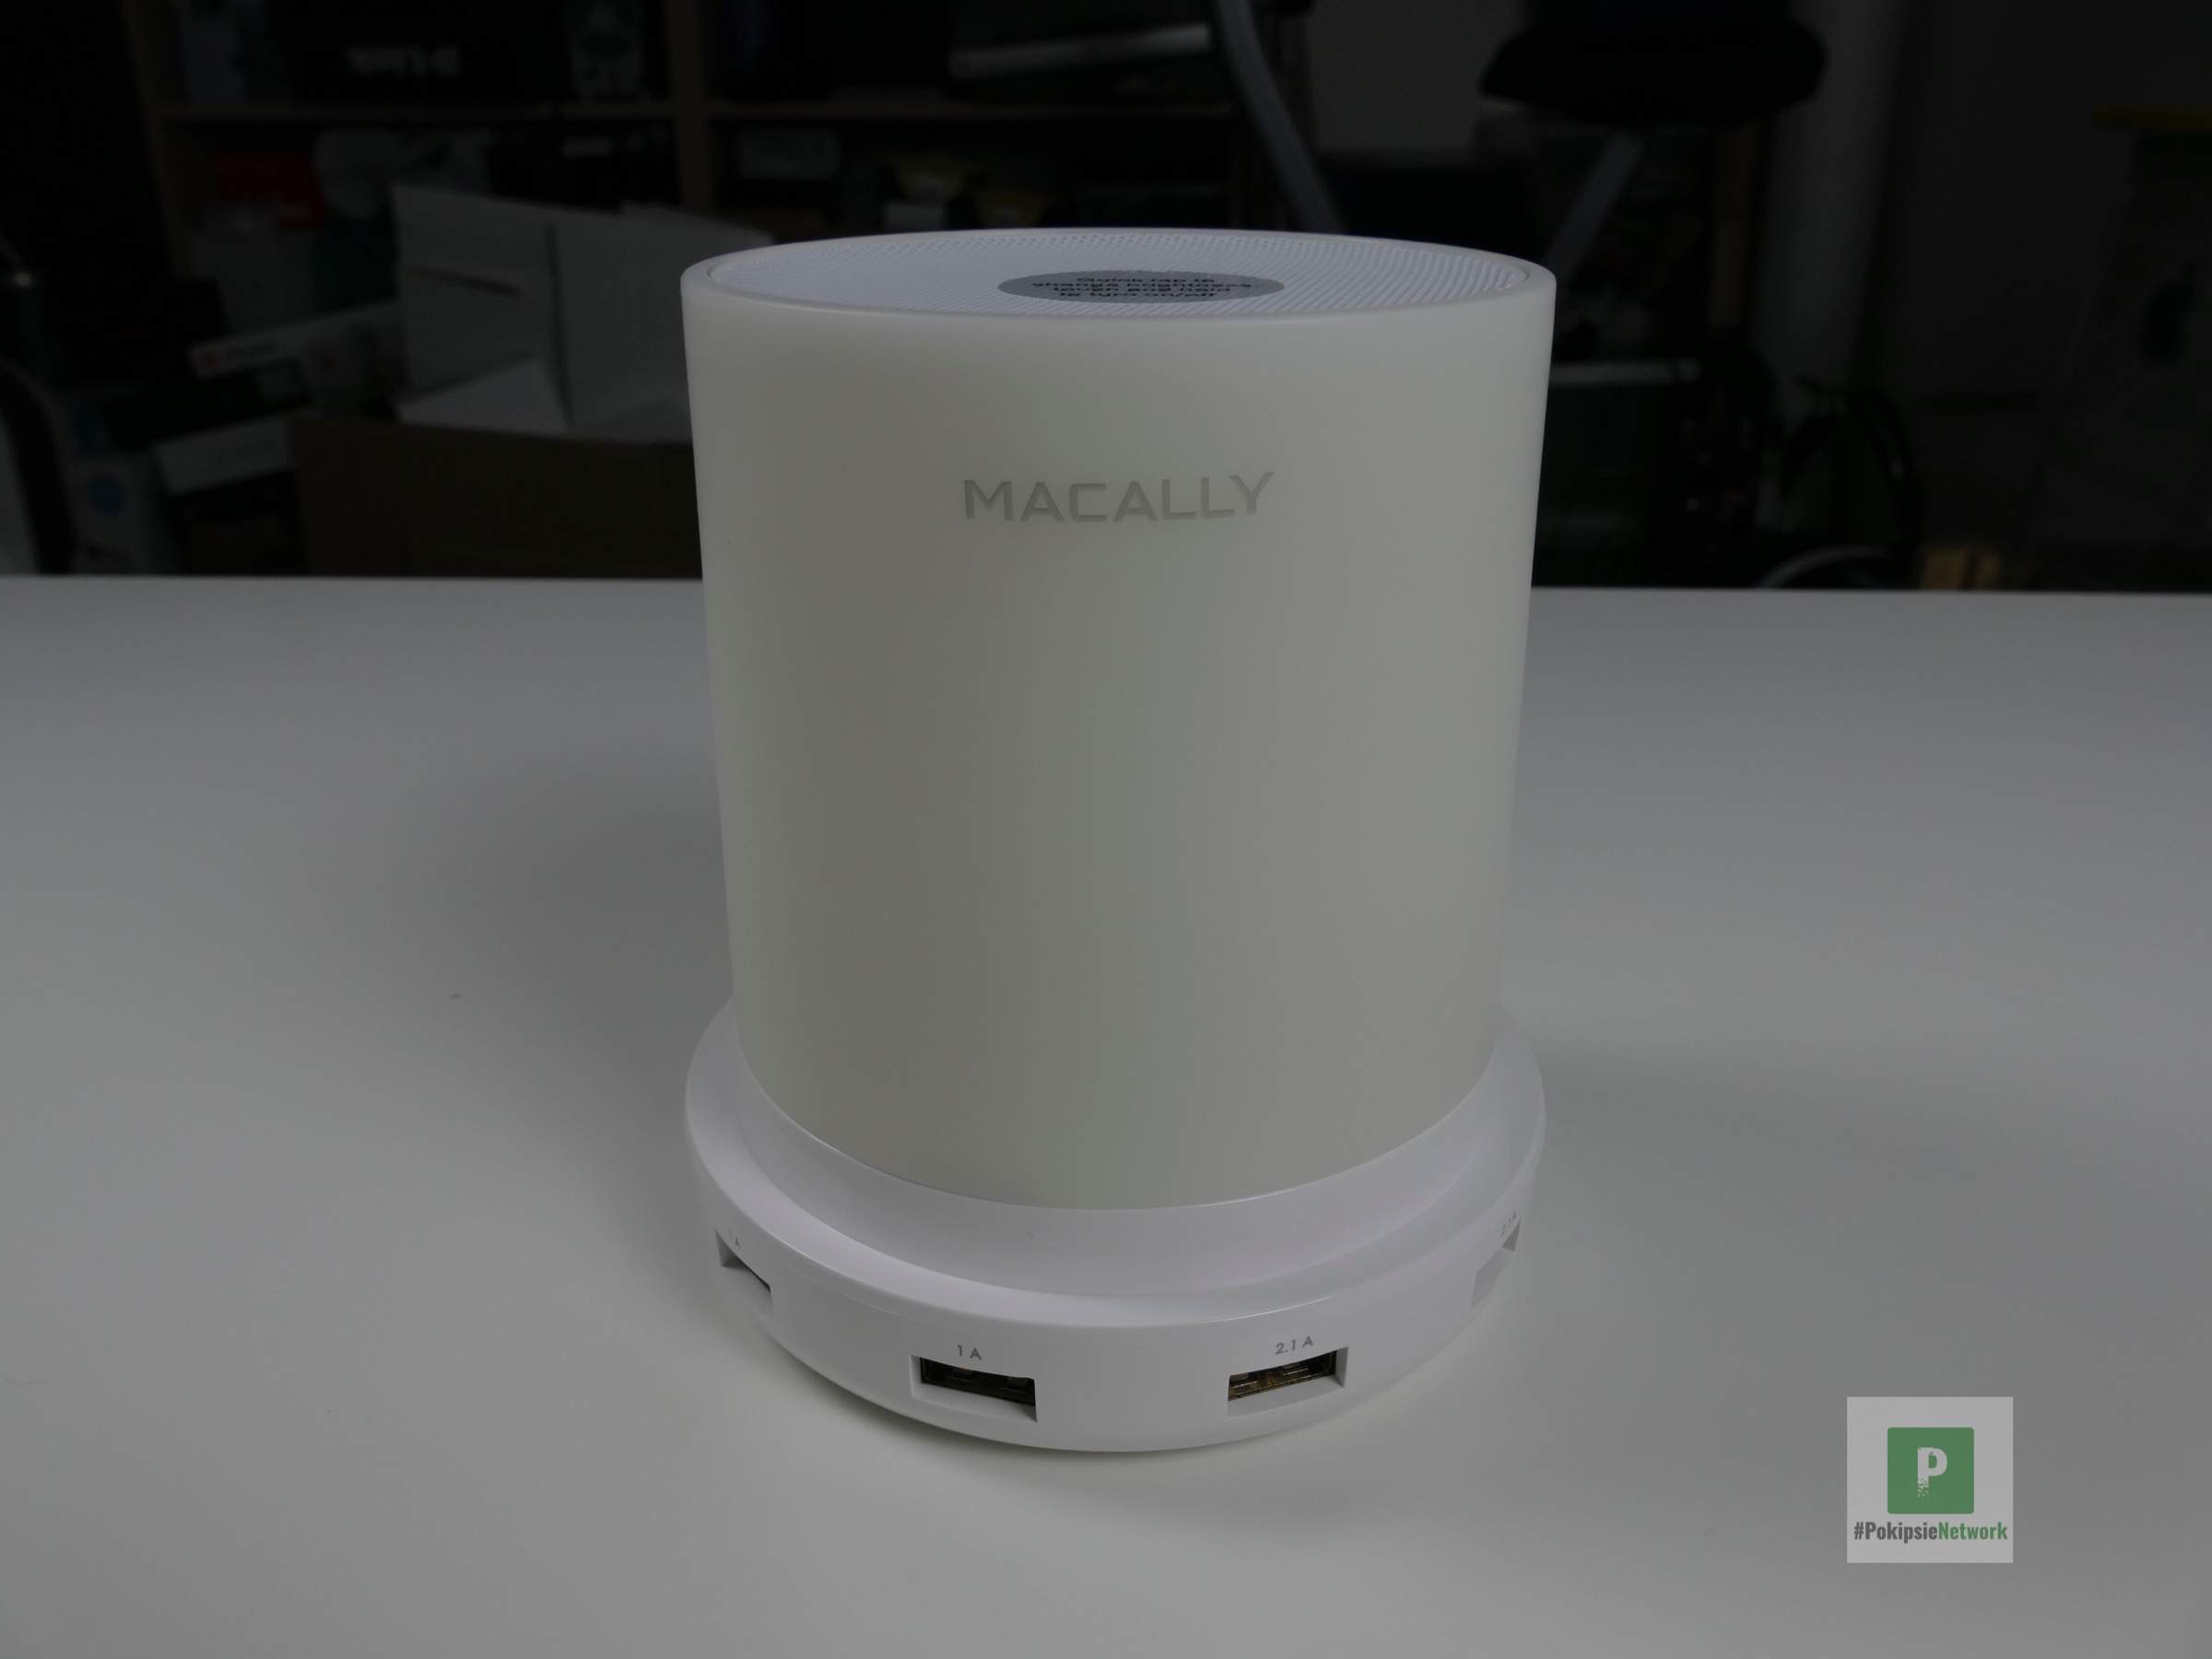 Macally Lamp Charger